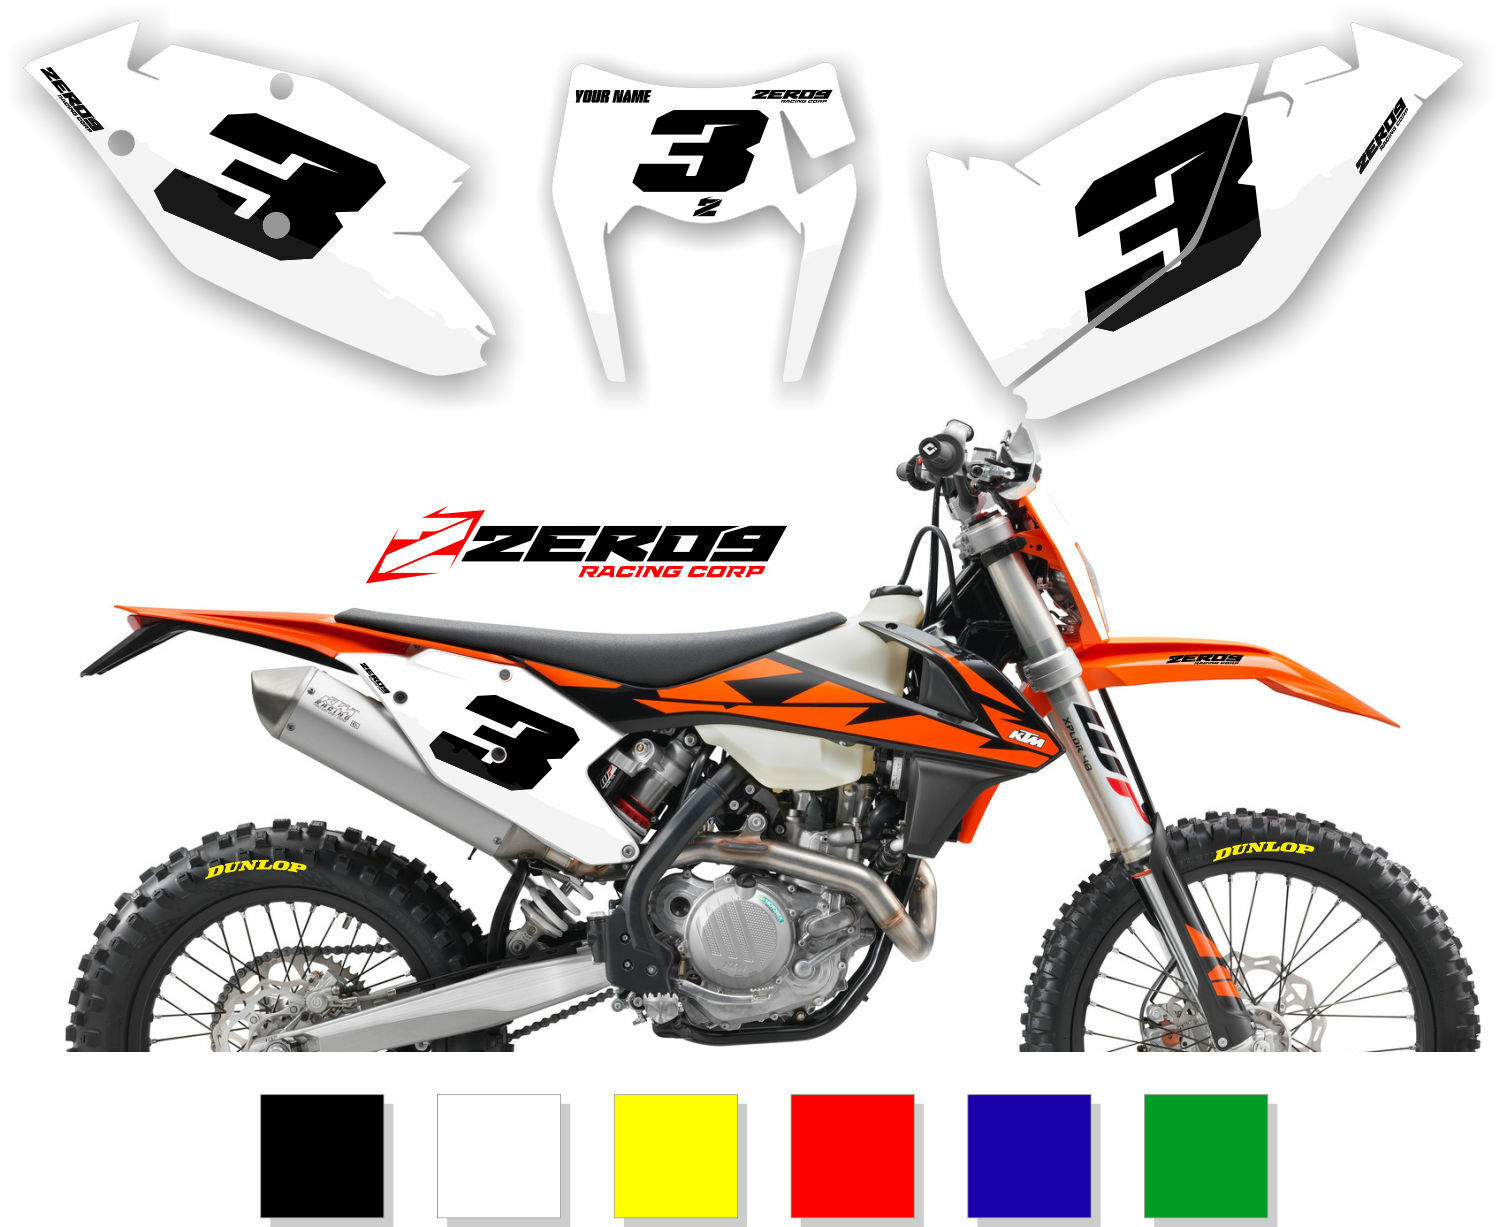 Ktm Motocross Mx Backgrounds Number Plates Sx Sx F Exc Exc F 50 525 Ebay